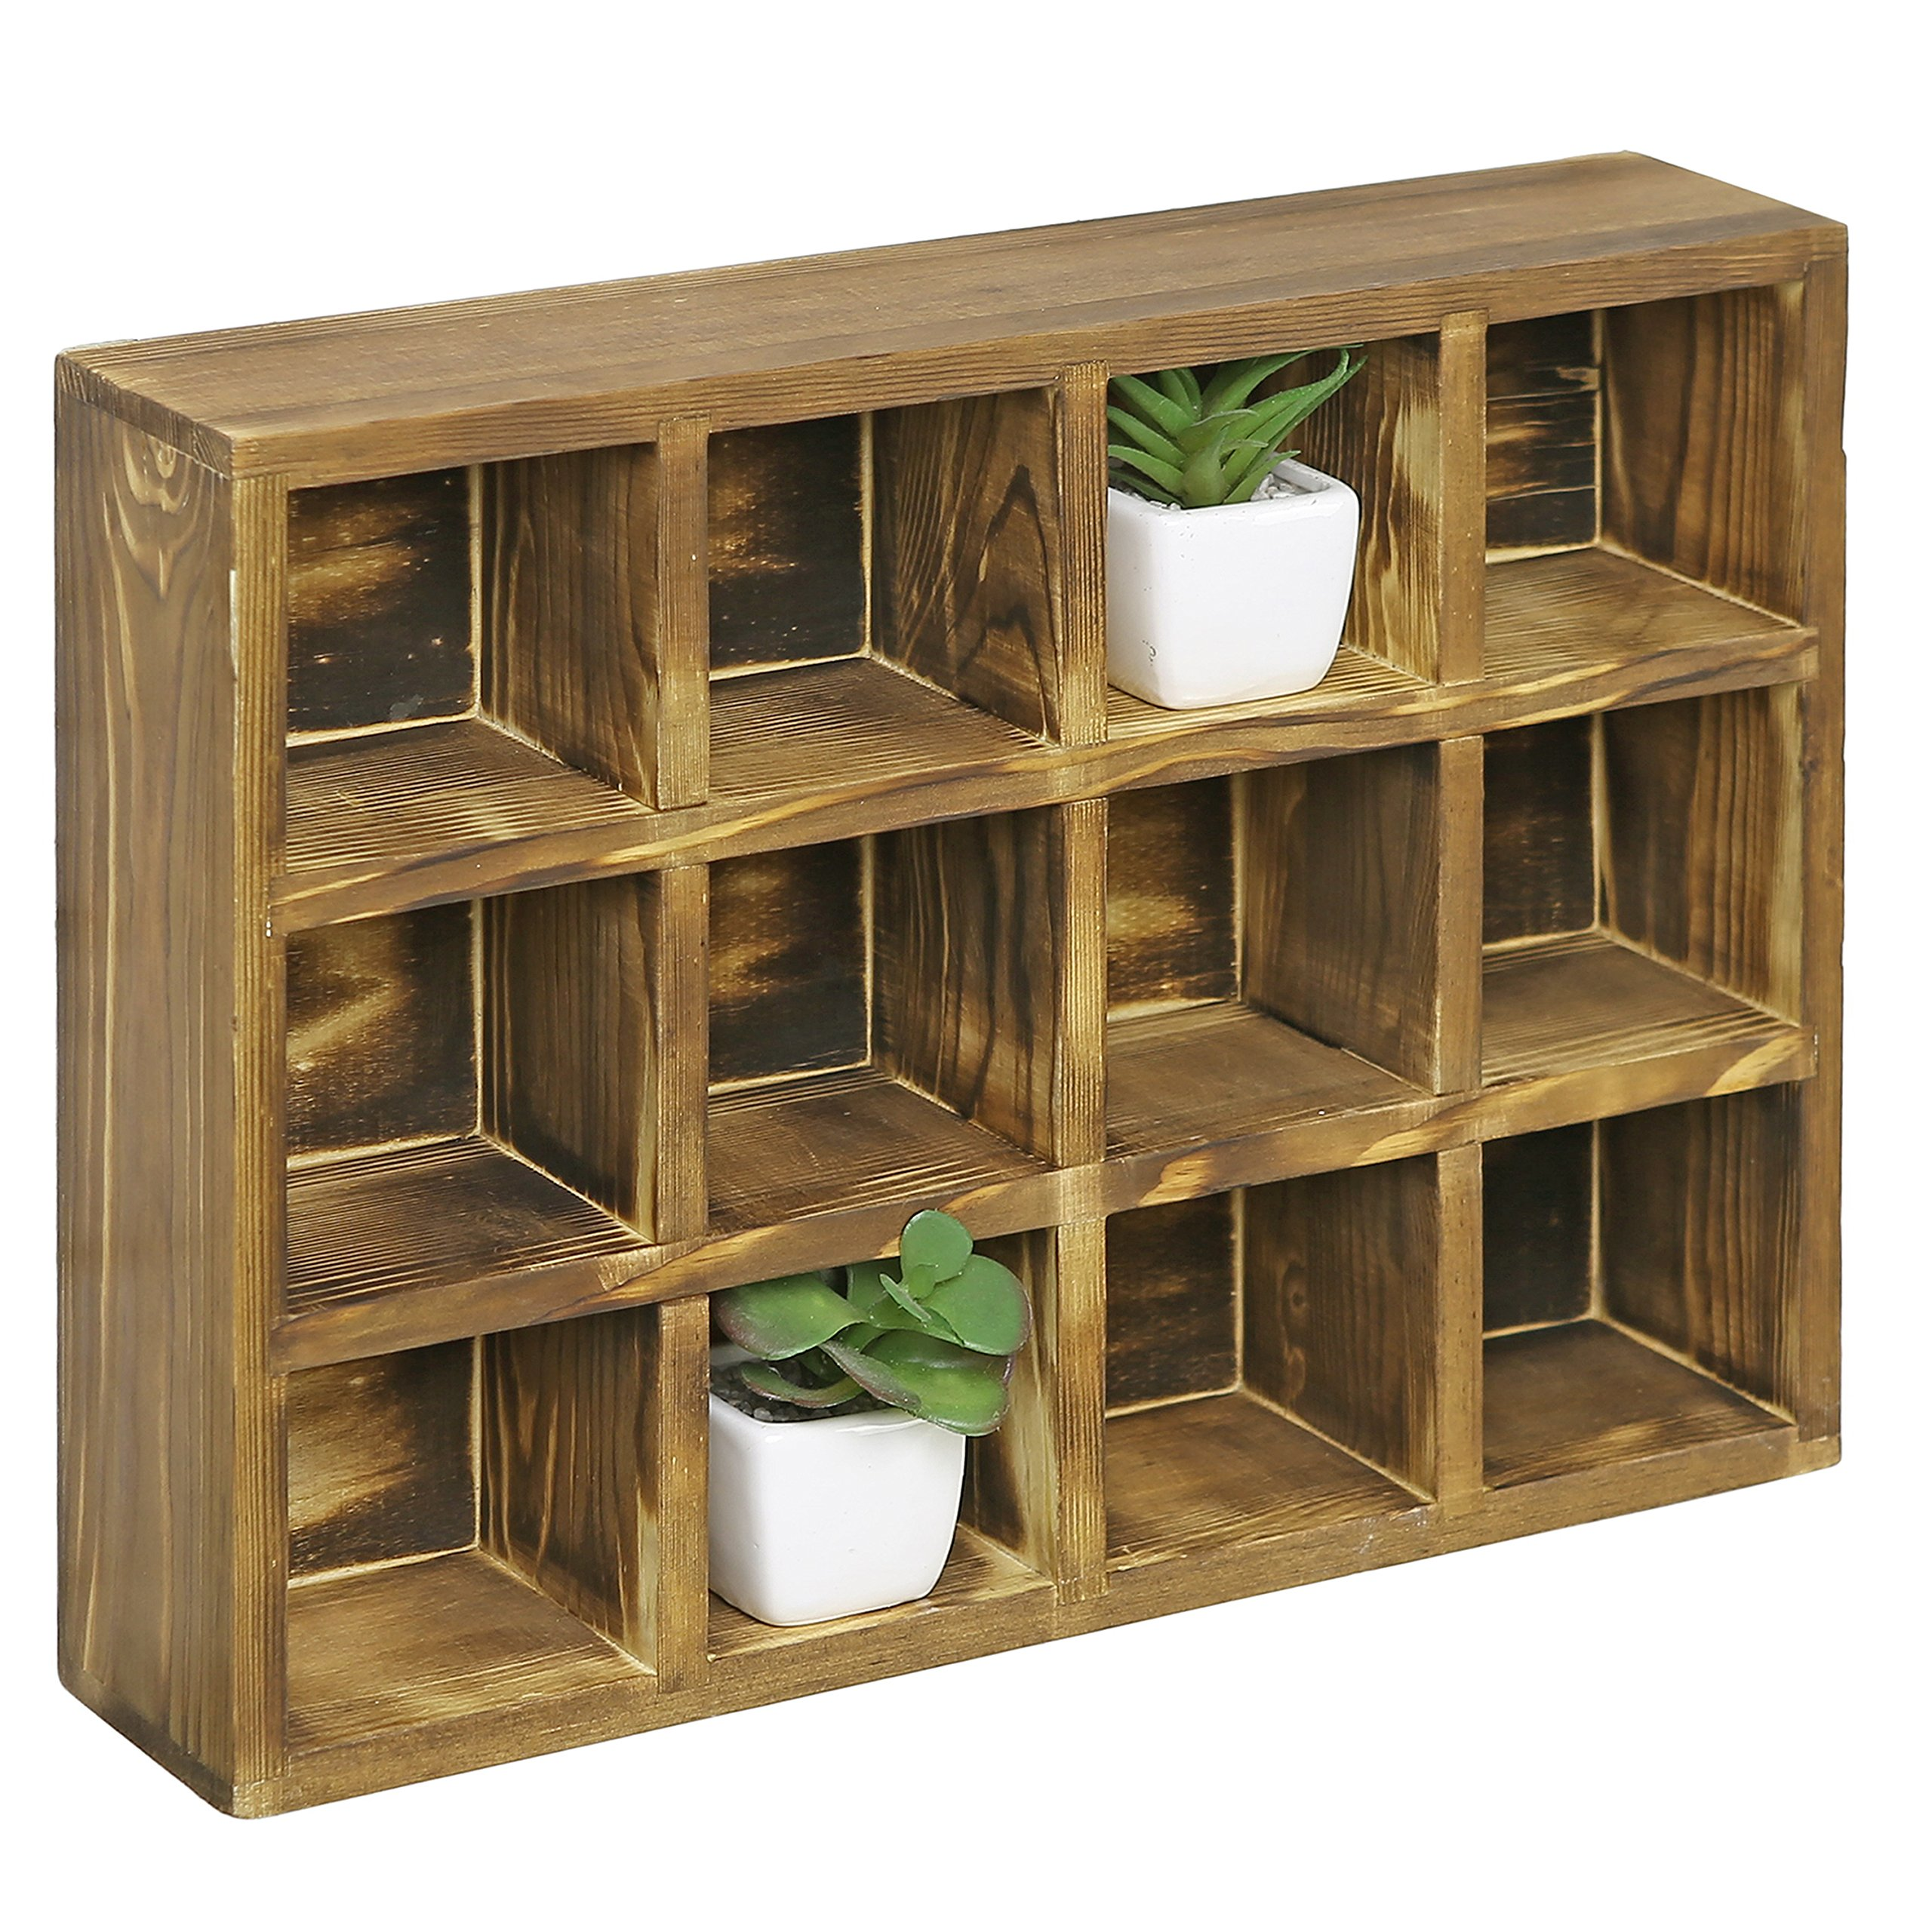 12 Compartment Torched Wood Freestanding or Wall Mounted Shadow Box, Display Shelf Shelving Unit by MyGift (Image #1)